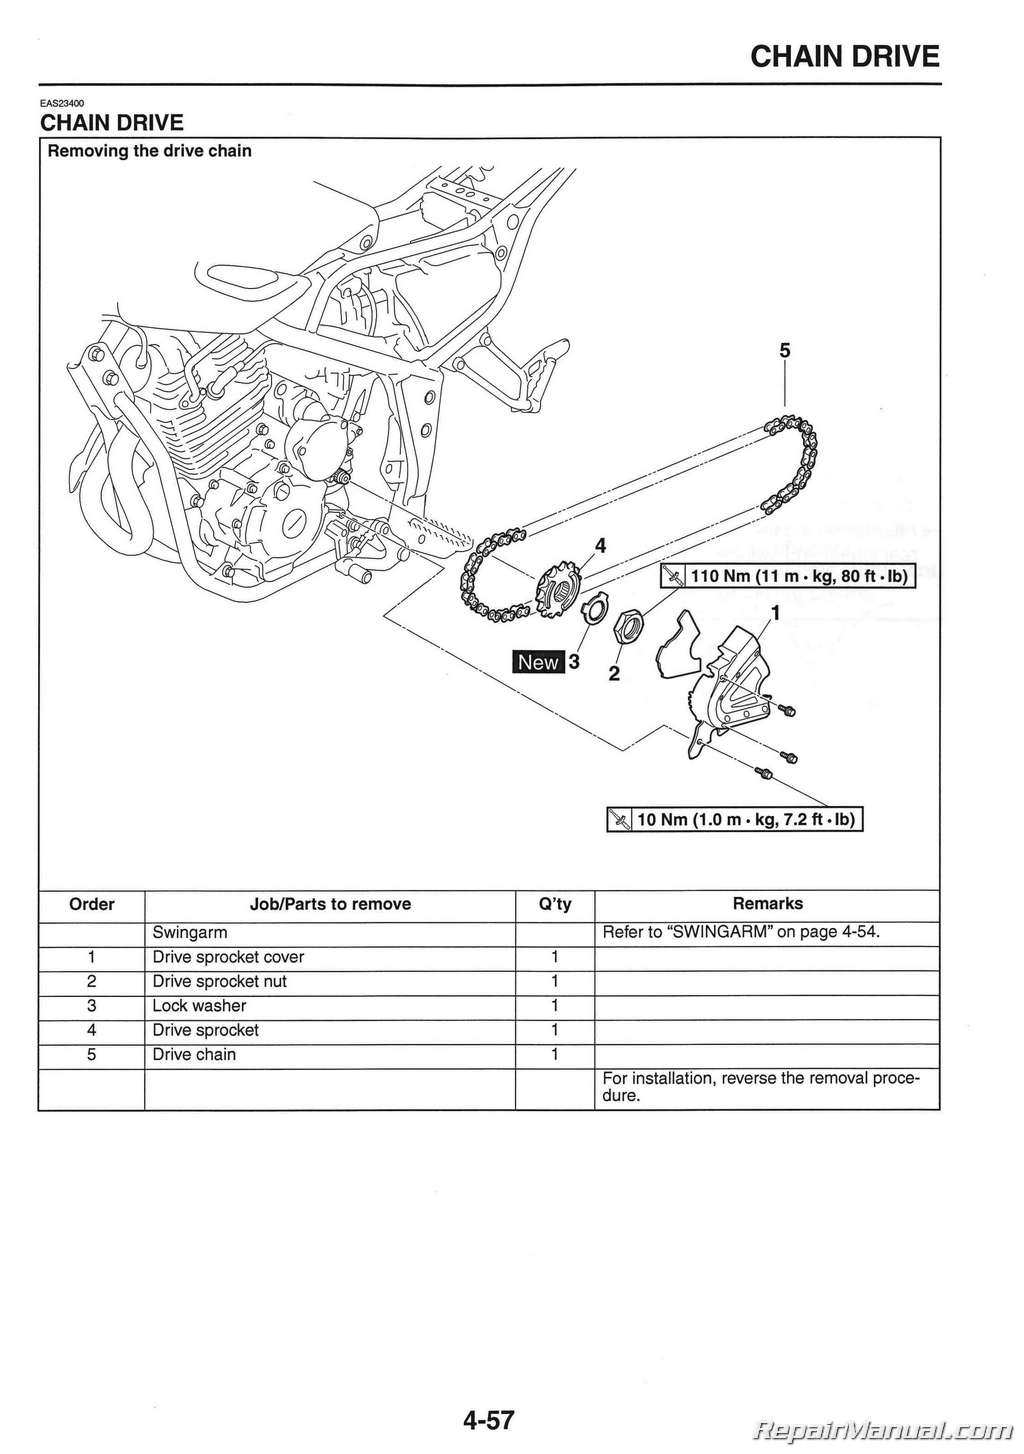 46996 Rhino Roof Rack Canoe in addition Brake Light Wiring Diagram likewise Watch as well Testing A Gas Golf Cart Solenoid also Watch. on 2010 yamaha golf cart